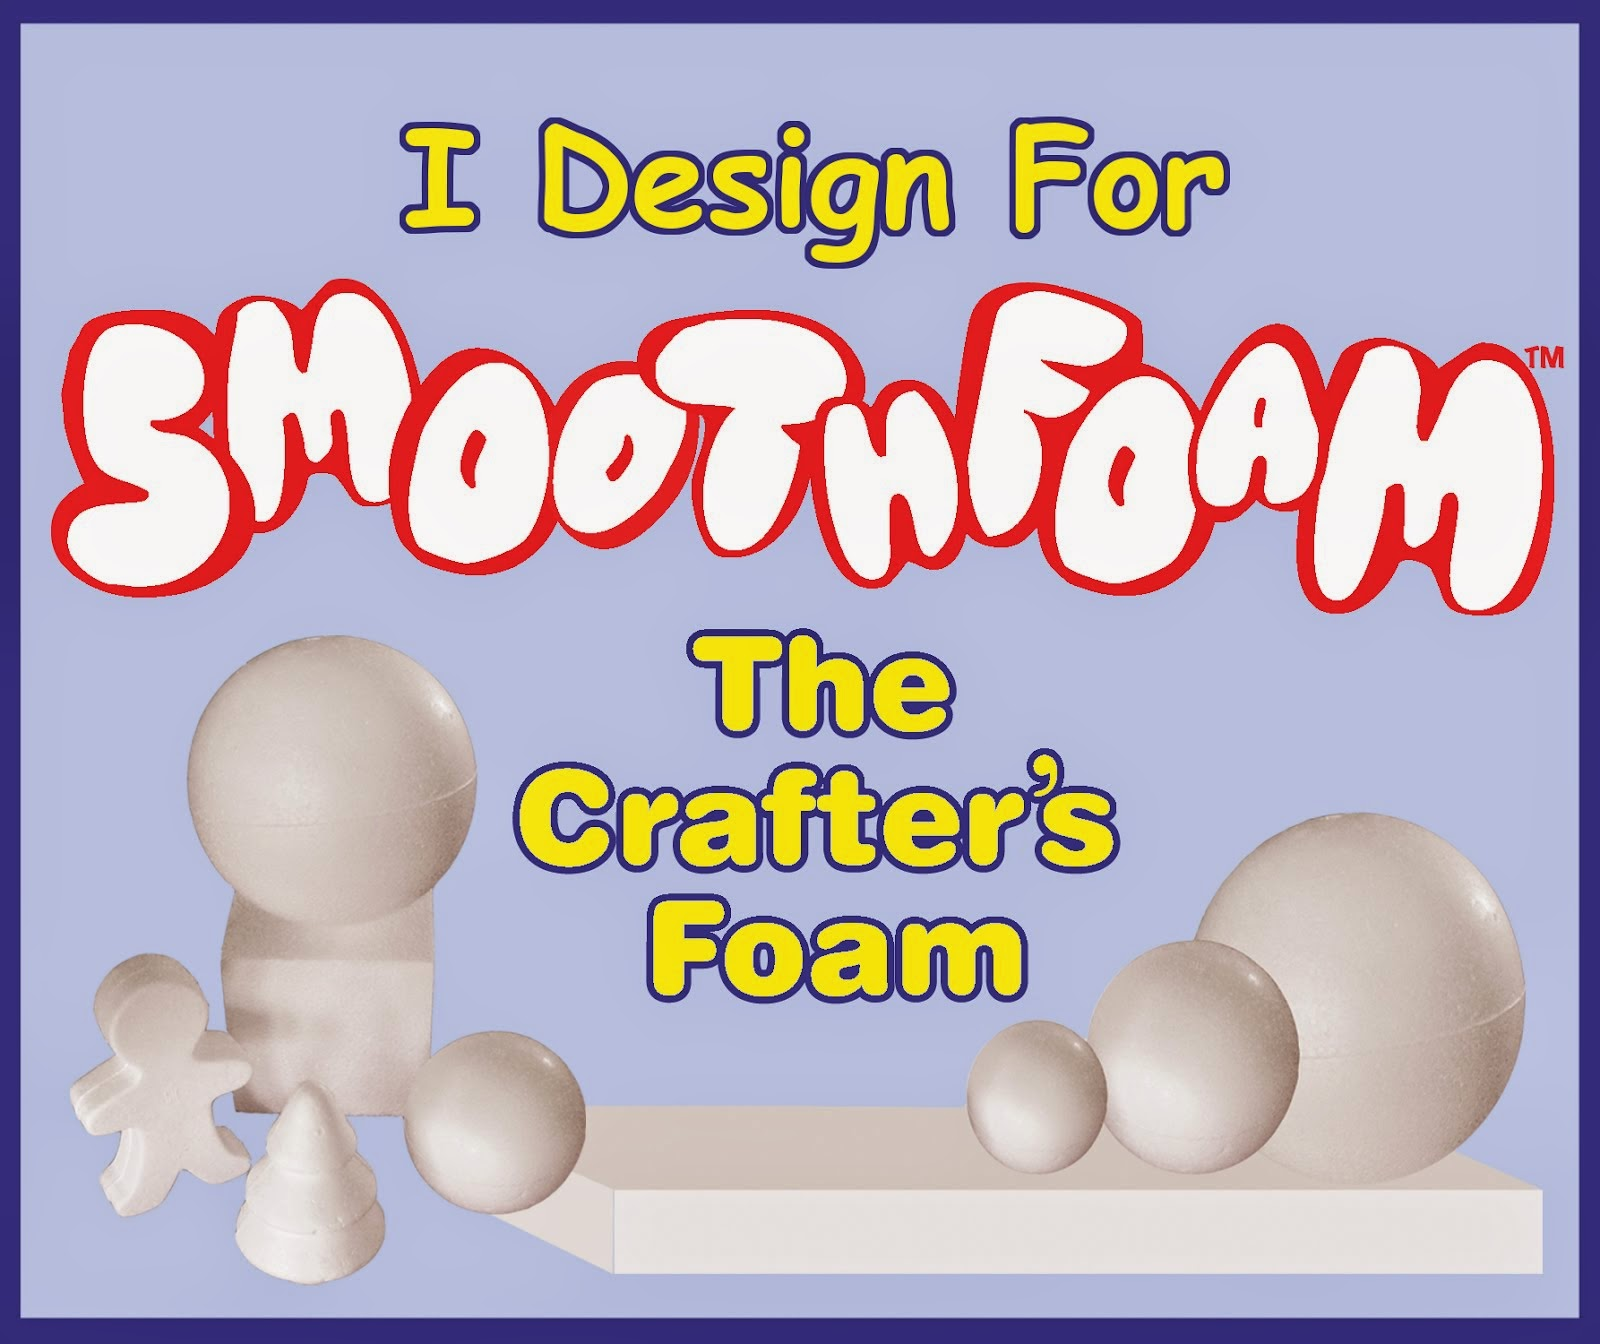 Smoothfoam - the Crafter's Foam